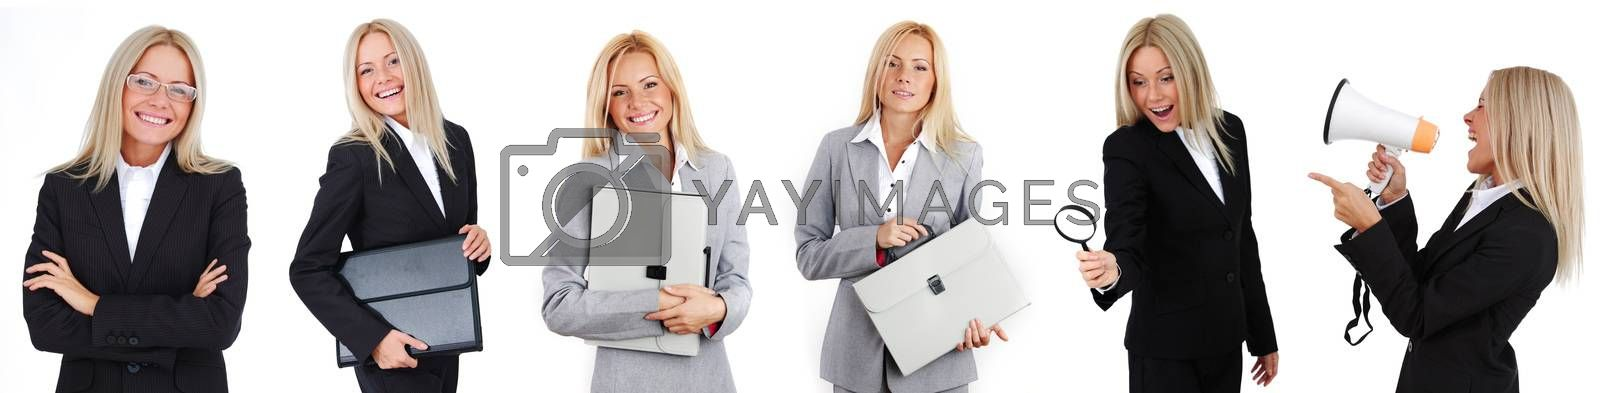 Set of photos of young business woman in various poses with case megaphone magnifier isolated on white